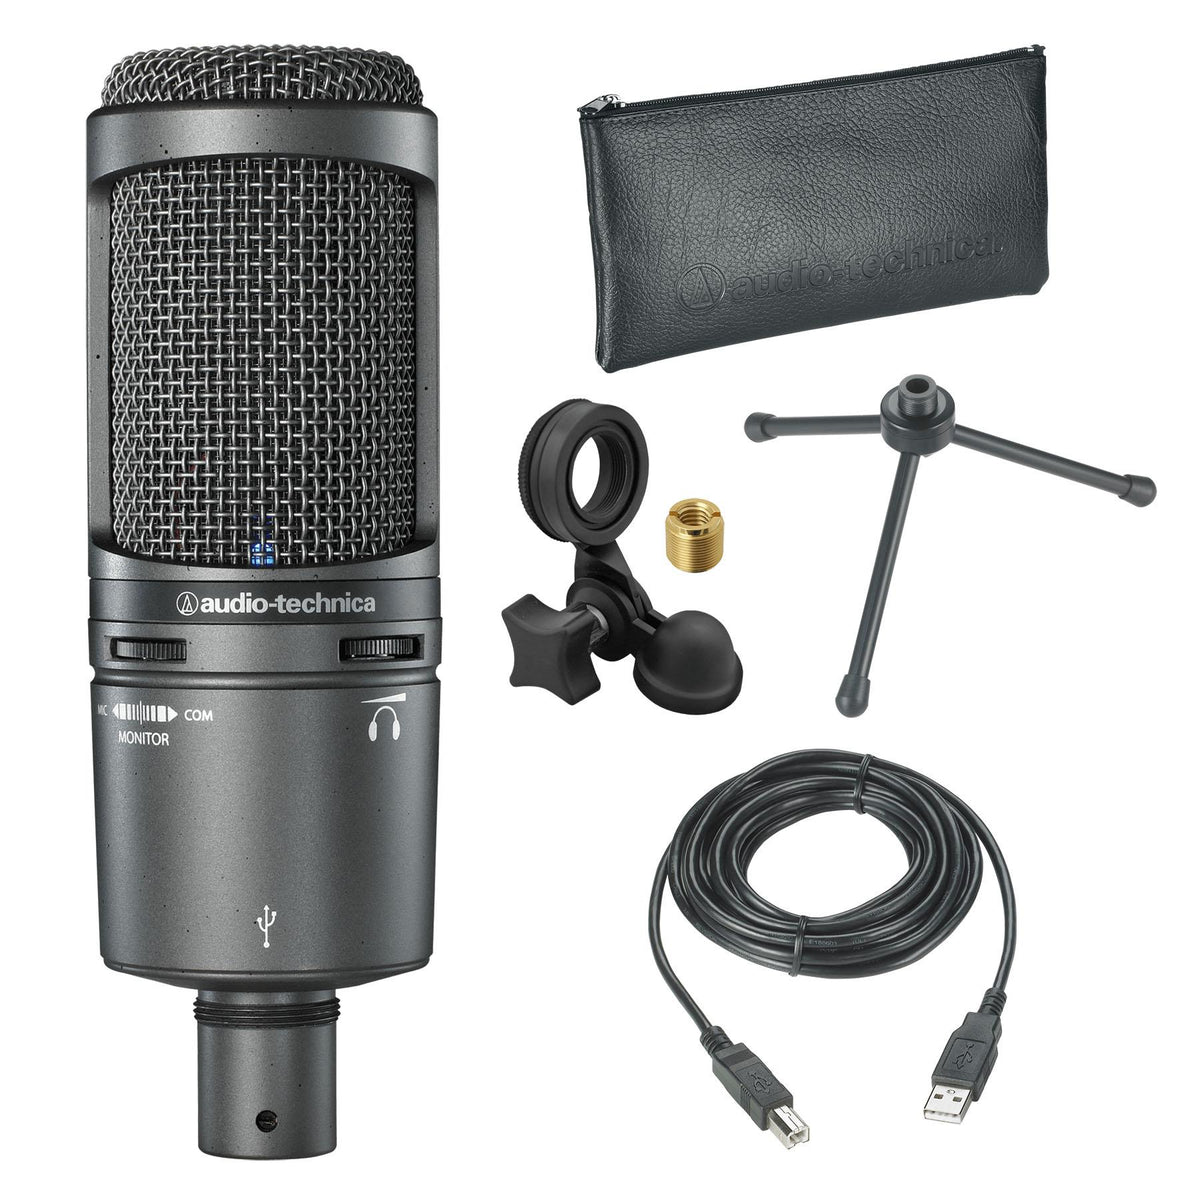 Audio-Technica AT2020USB+ USB Microphone